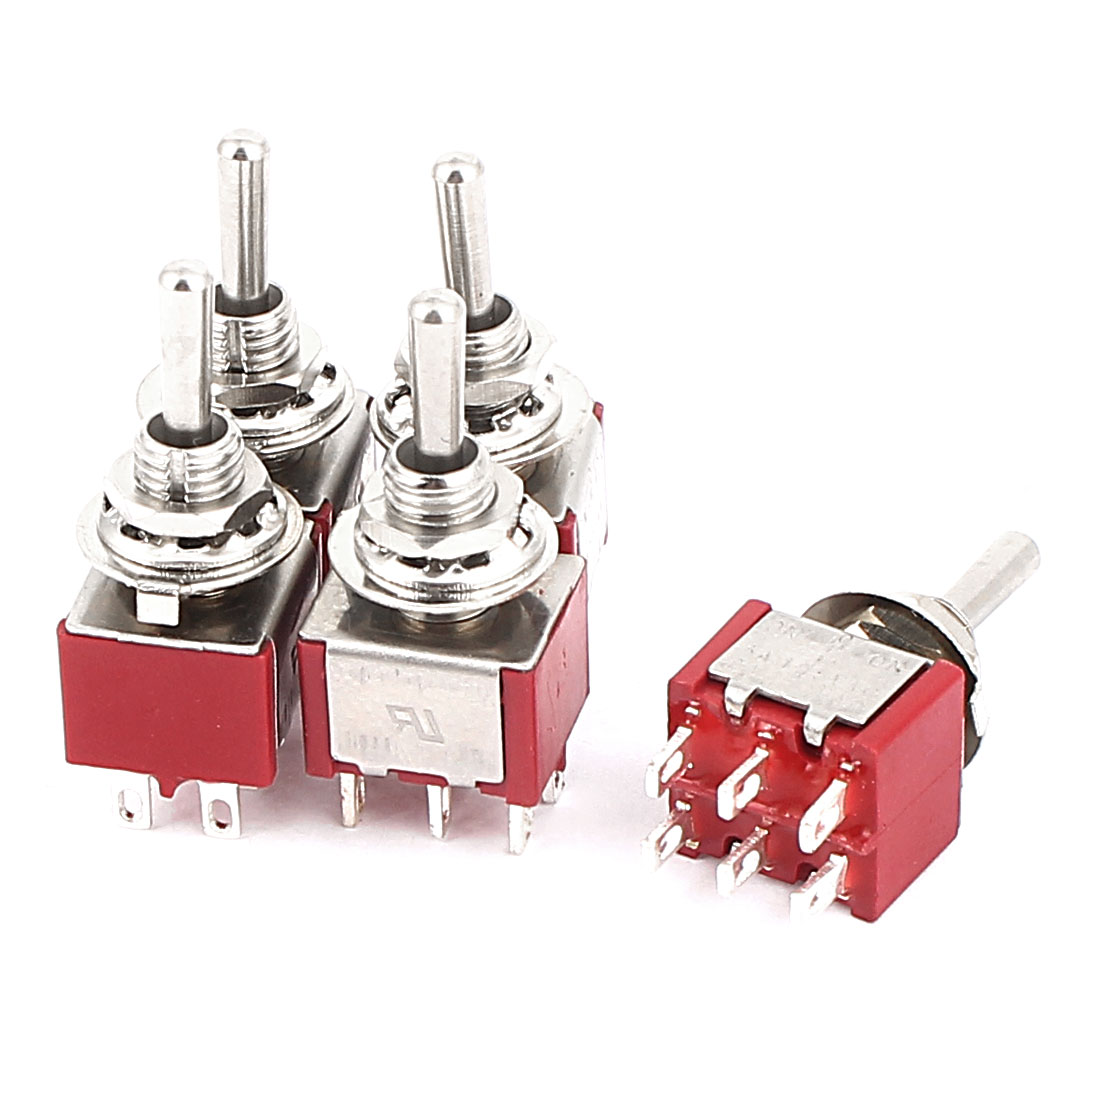 AC 250V/125 2A/5A DPDT ON-ON 3 Positions 6Pin Momentary Toggle Switch 5 Pcs